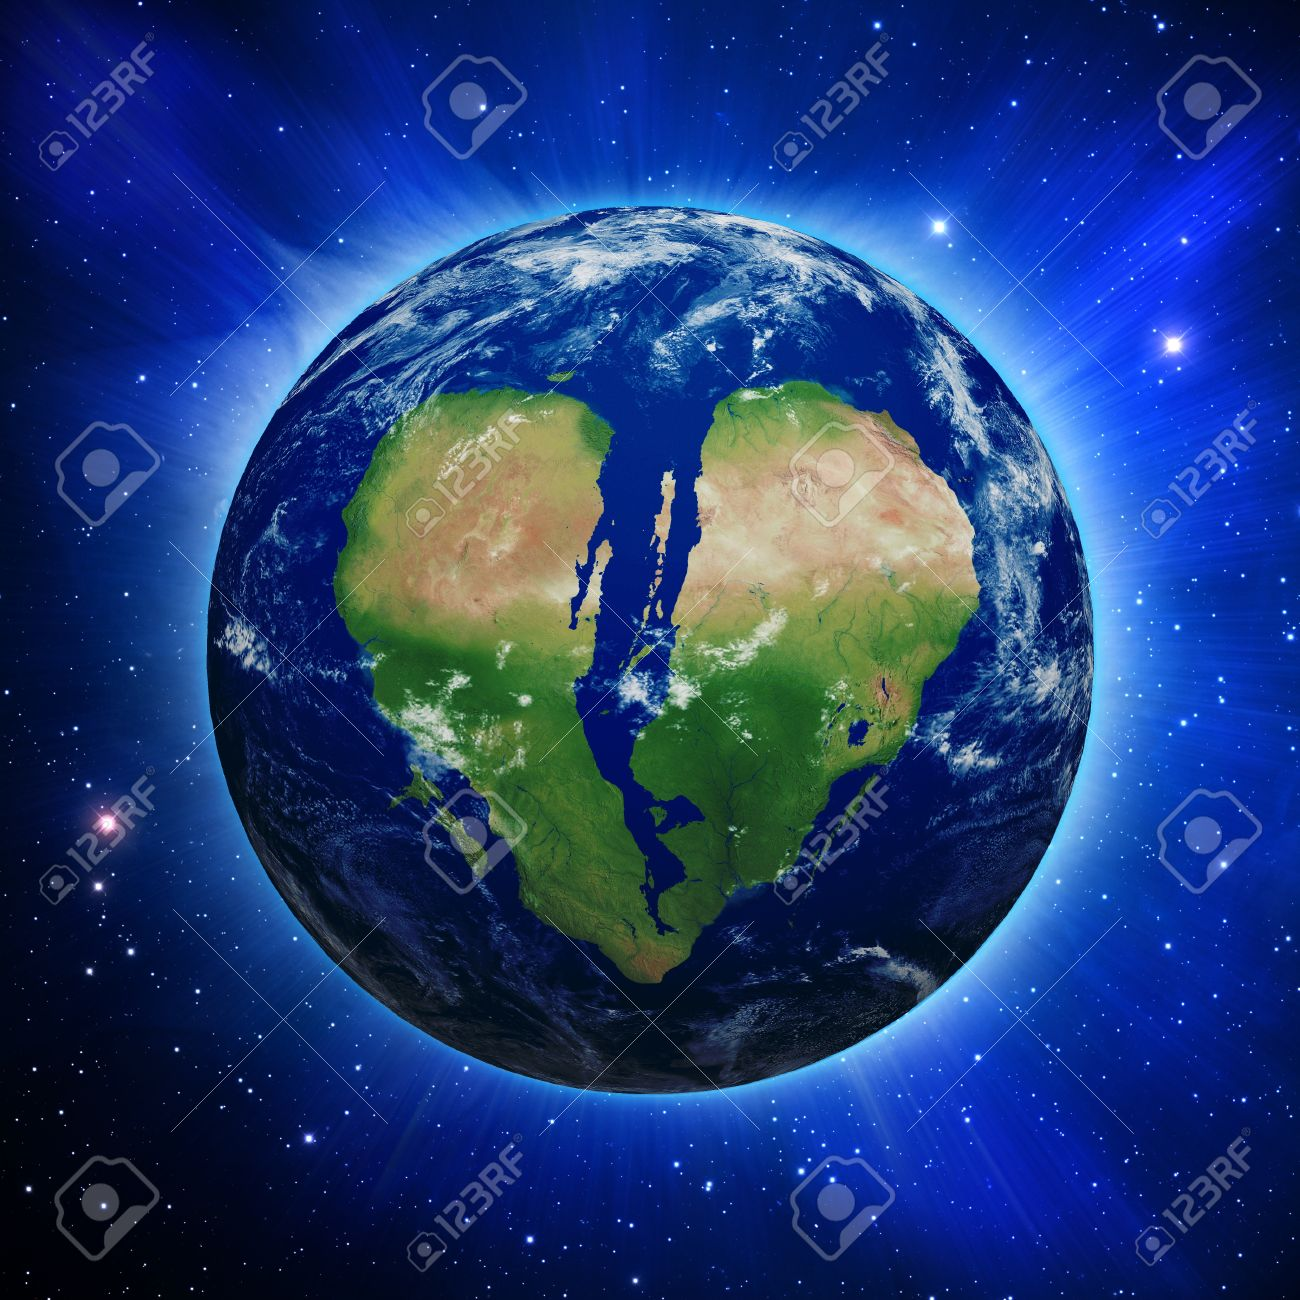 Planet Earth with broken heart shaped continents and clouds over a starry sky Stock Photo - 9841928